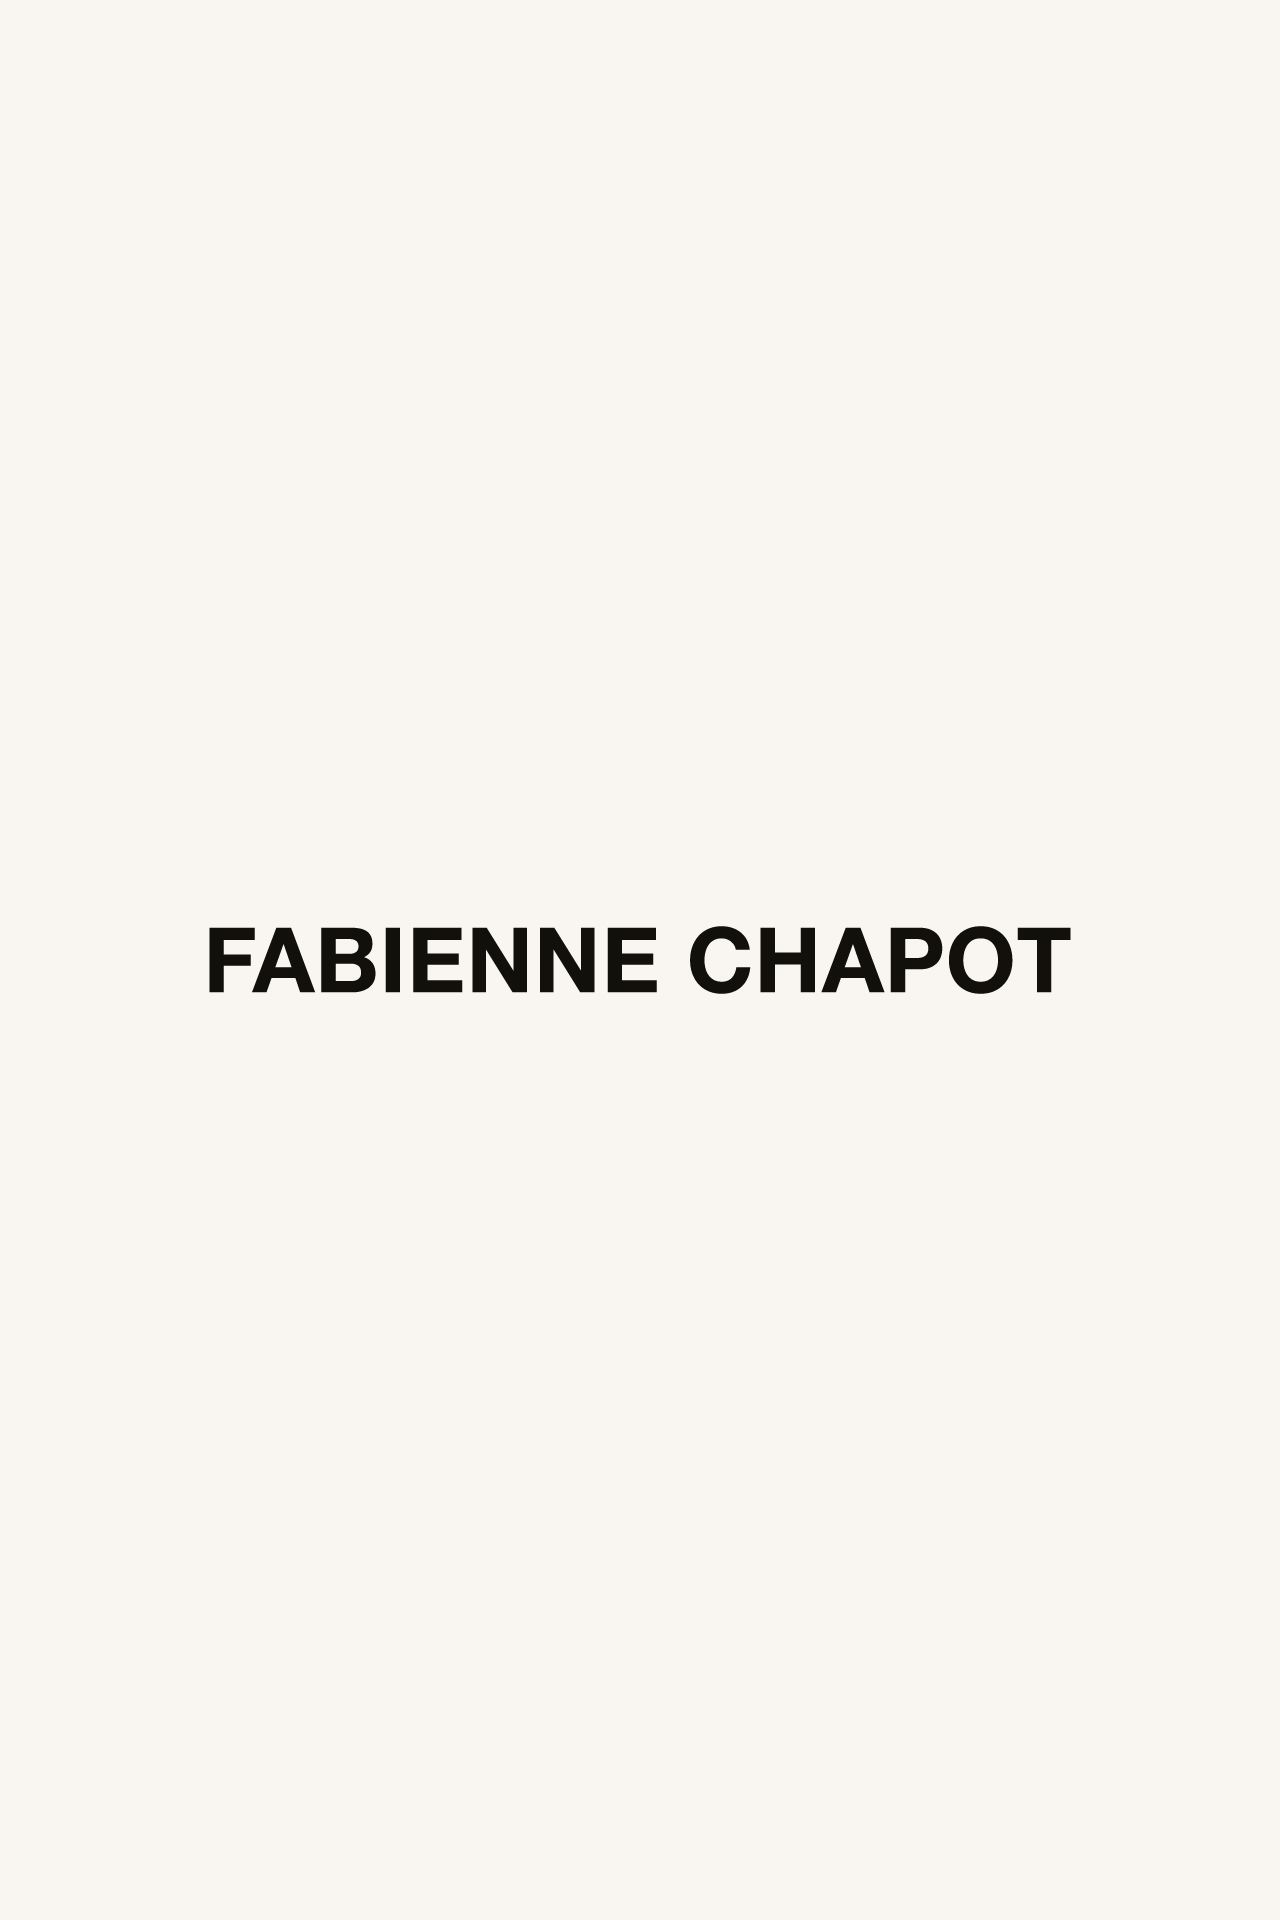 c17f31502670 All Bags - Fabienne Chapot - The official webshop